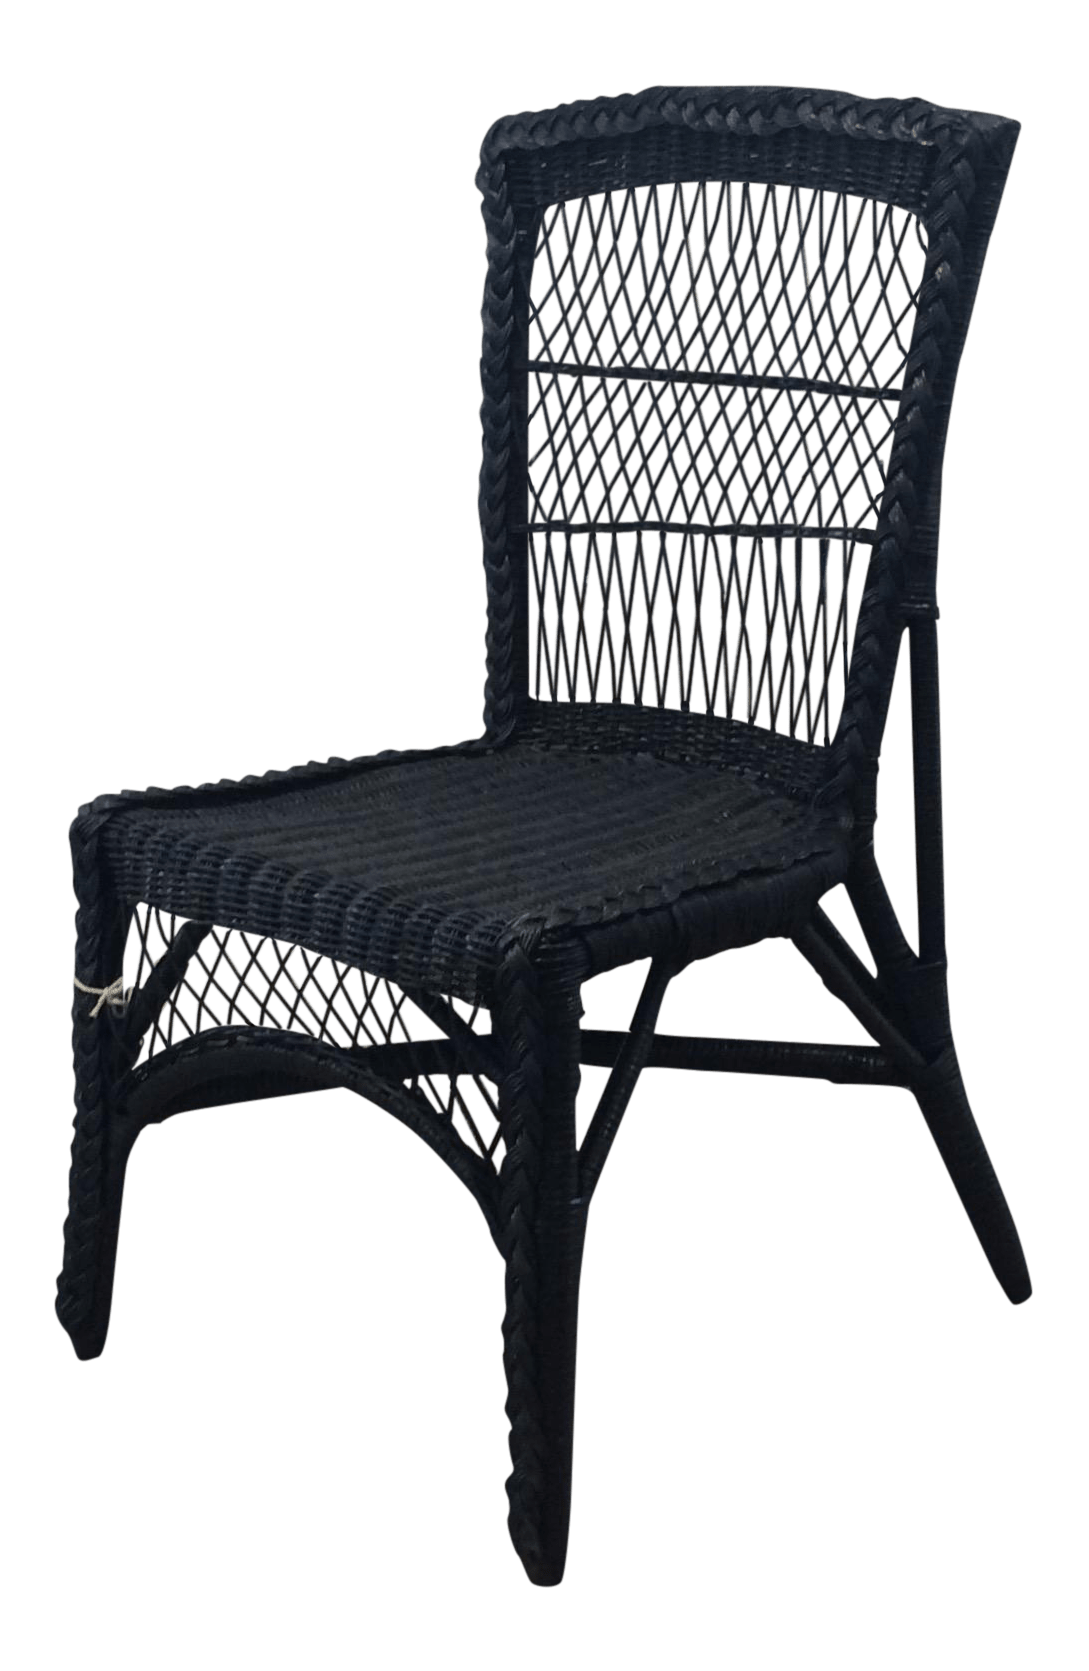 Vintage Accent Chair Vintage Blue Wicker Accent Chair Chairish